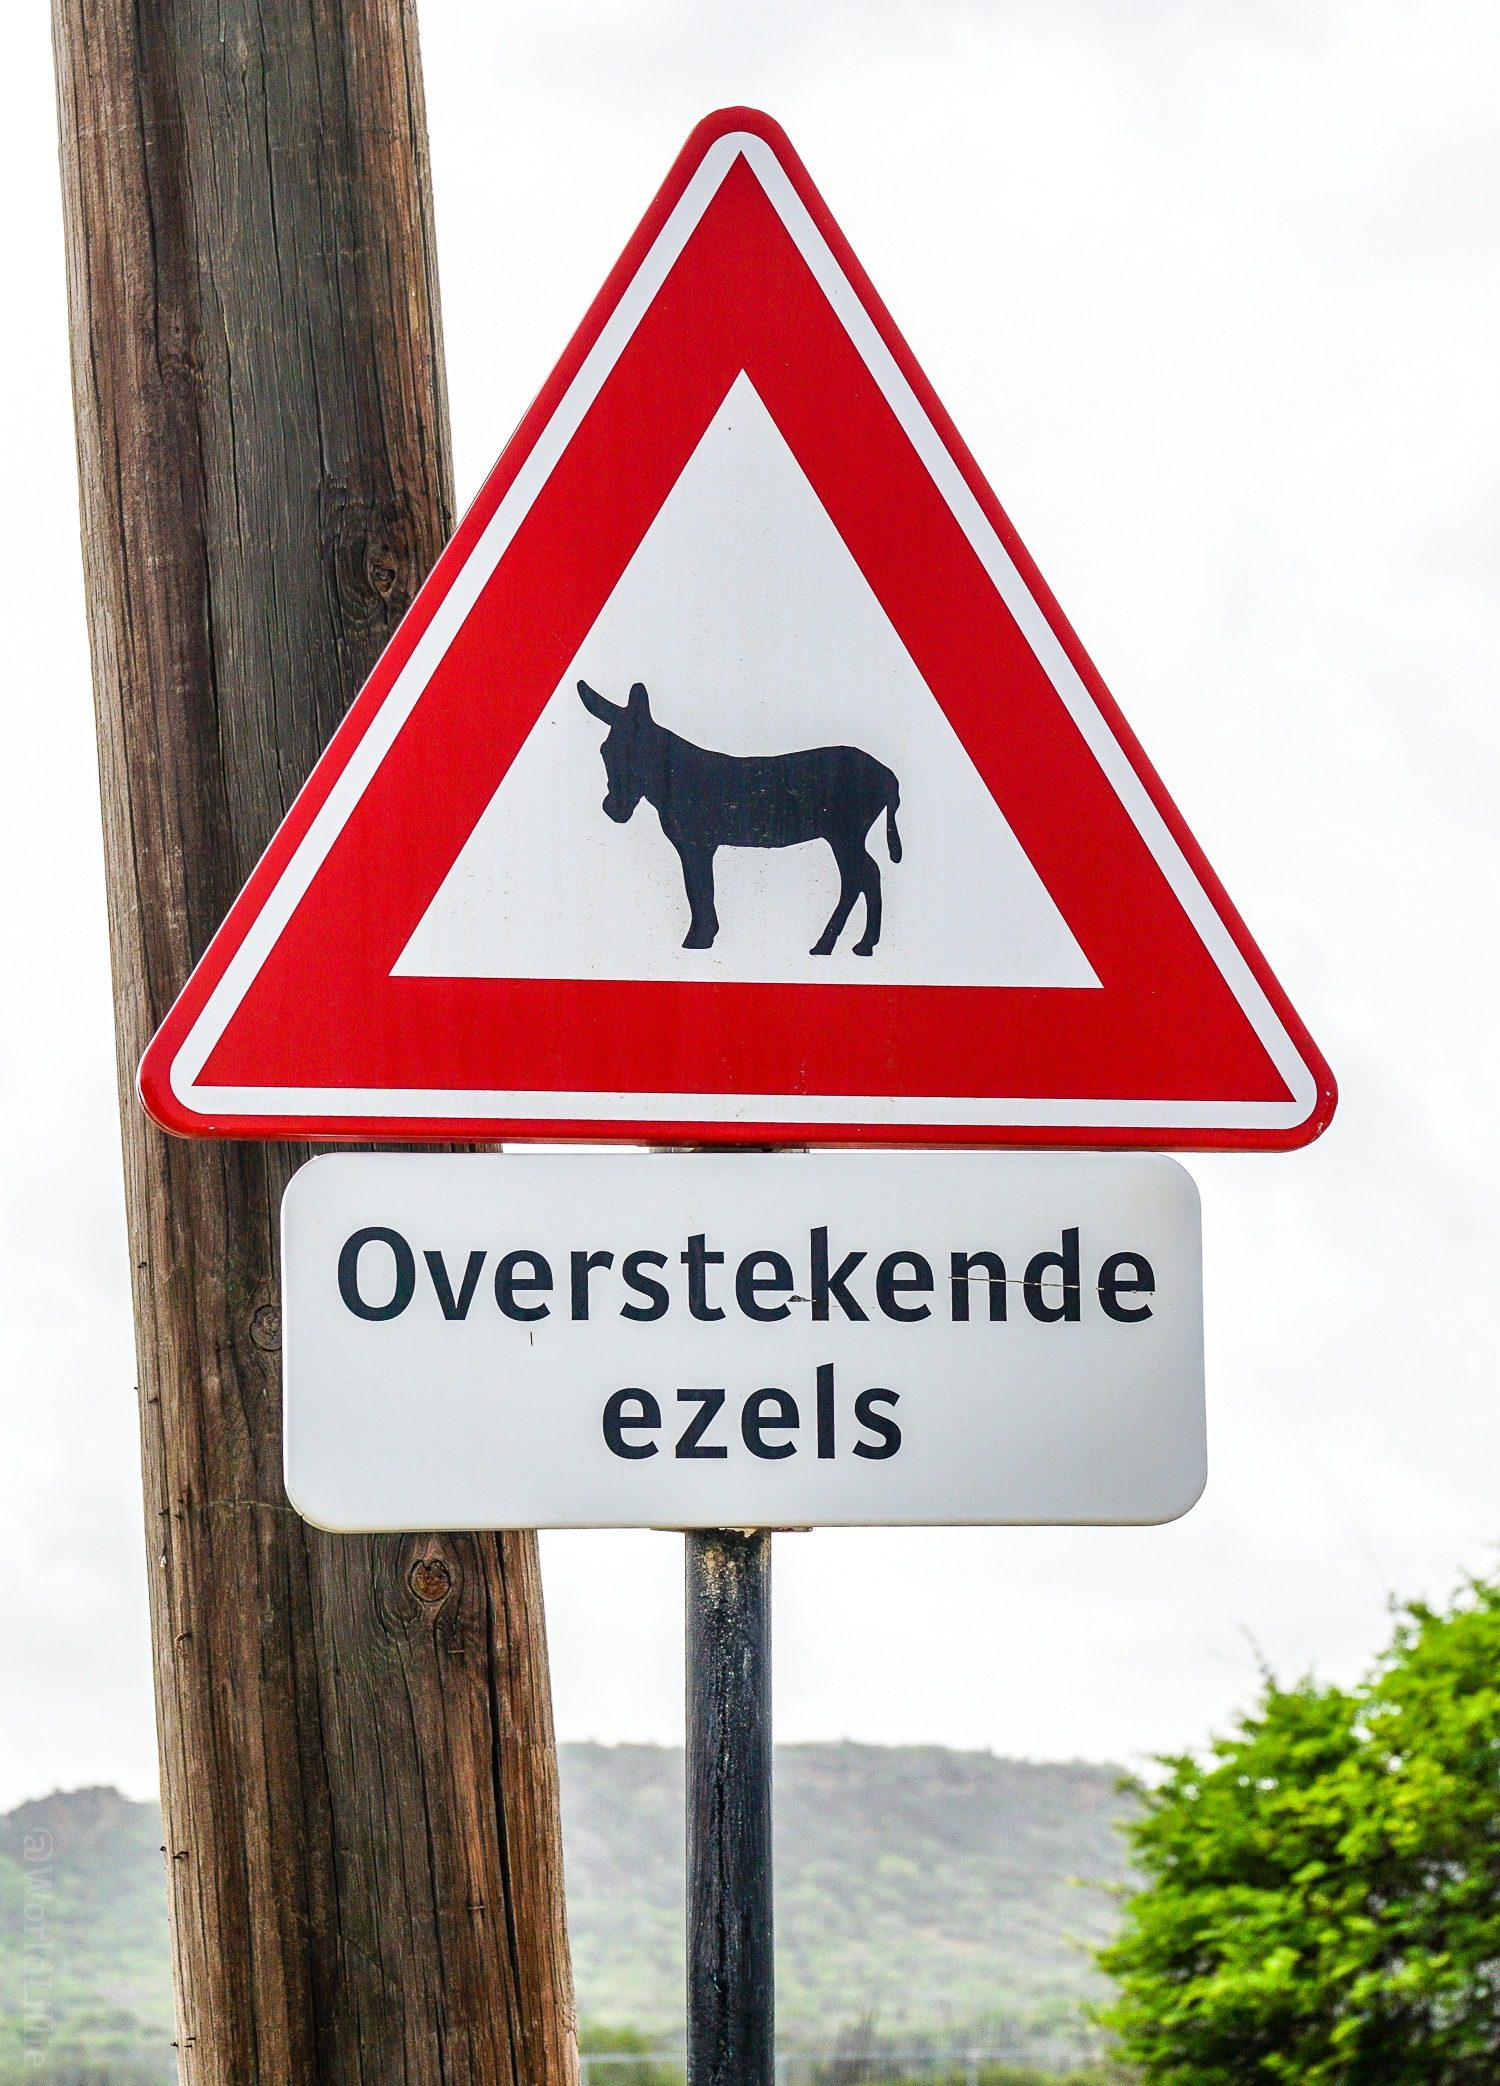 Dutch donkey crossing: Overstekende ezels. This shows the Dutch influence in the Caribbean island of Bonaire.